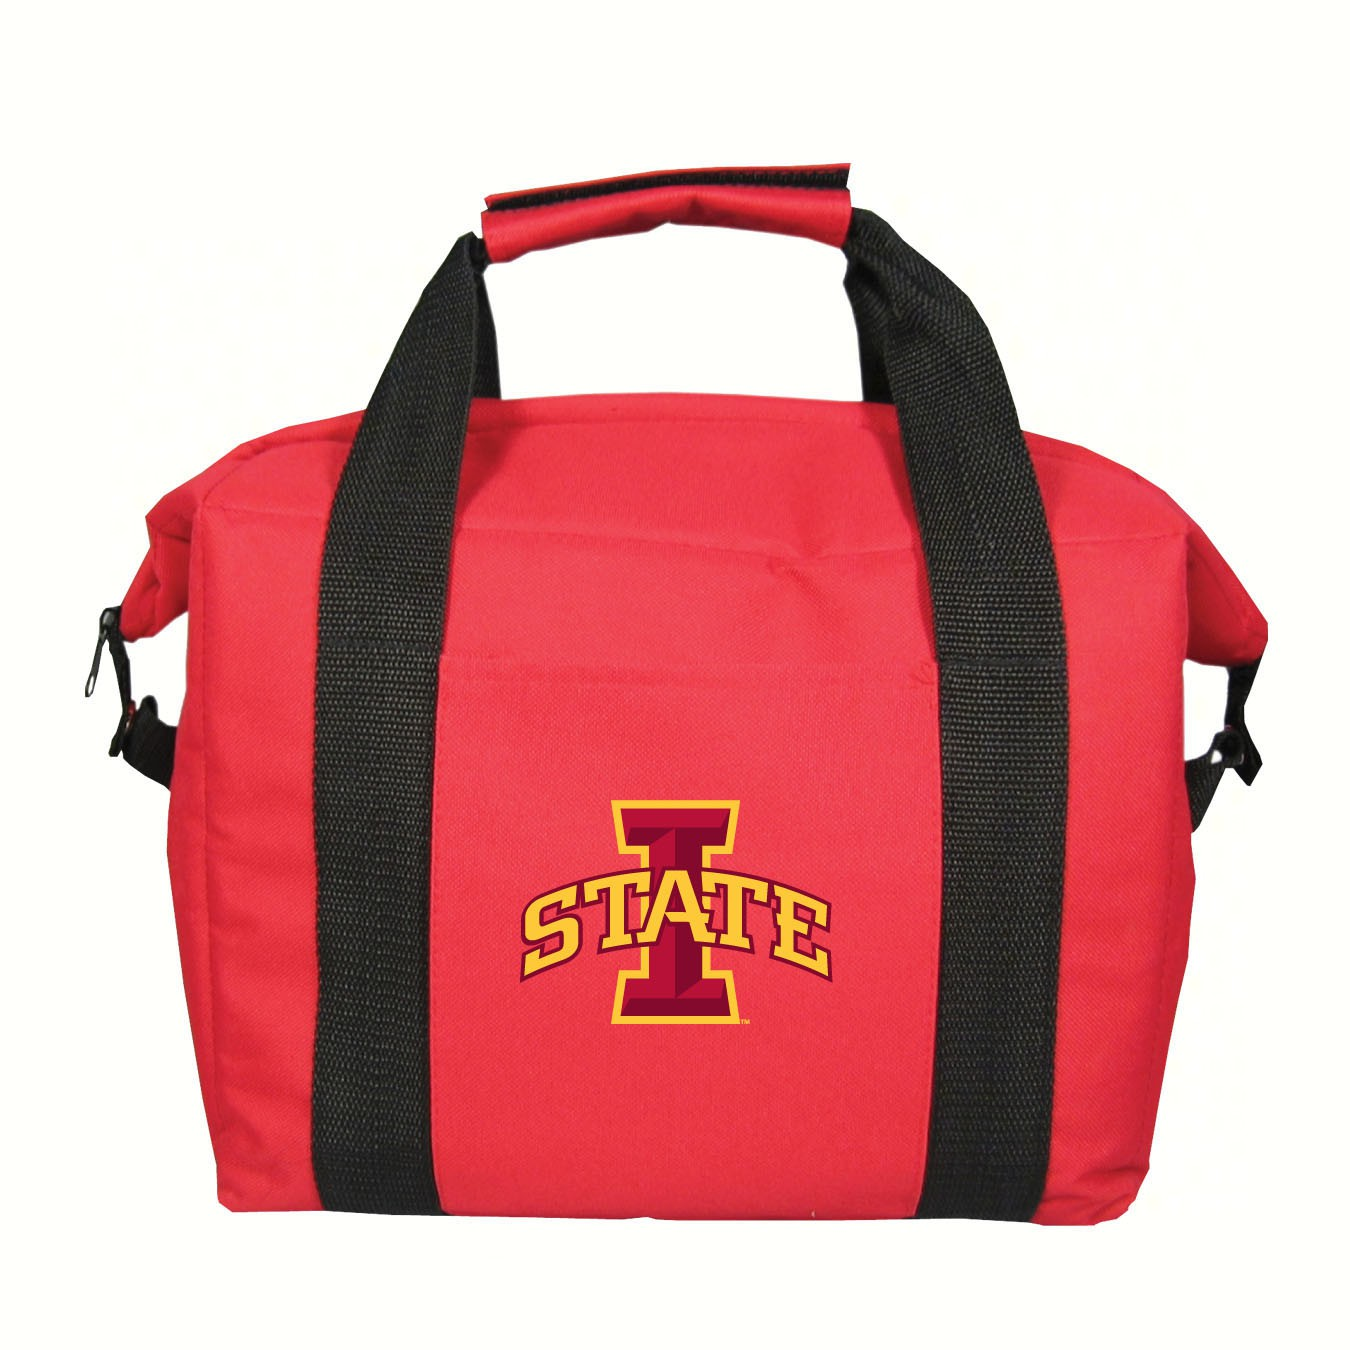 Kooler Bag Iowa State Cyclones (Holds a 12 Pack)